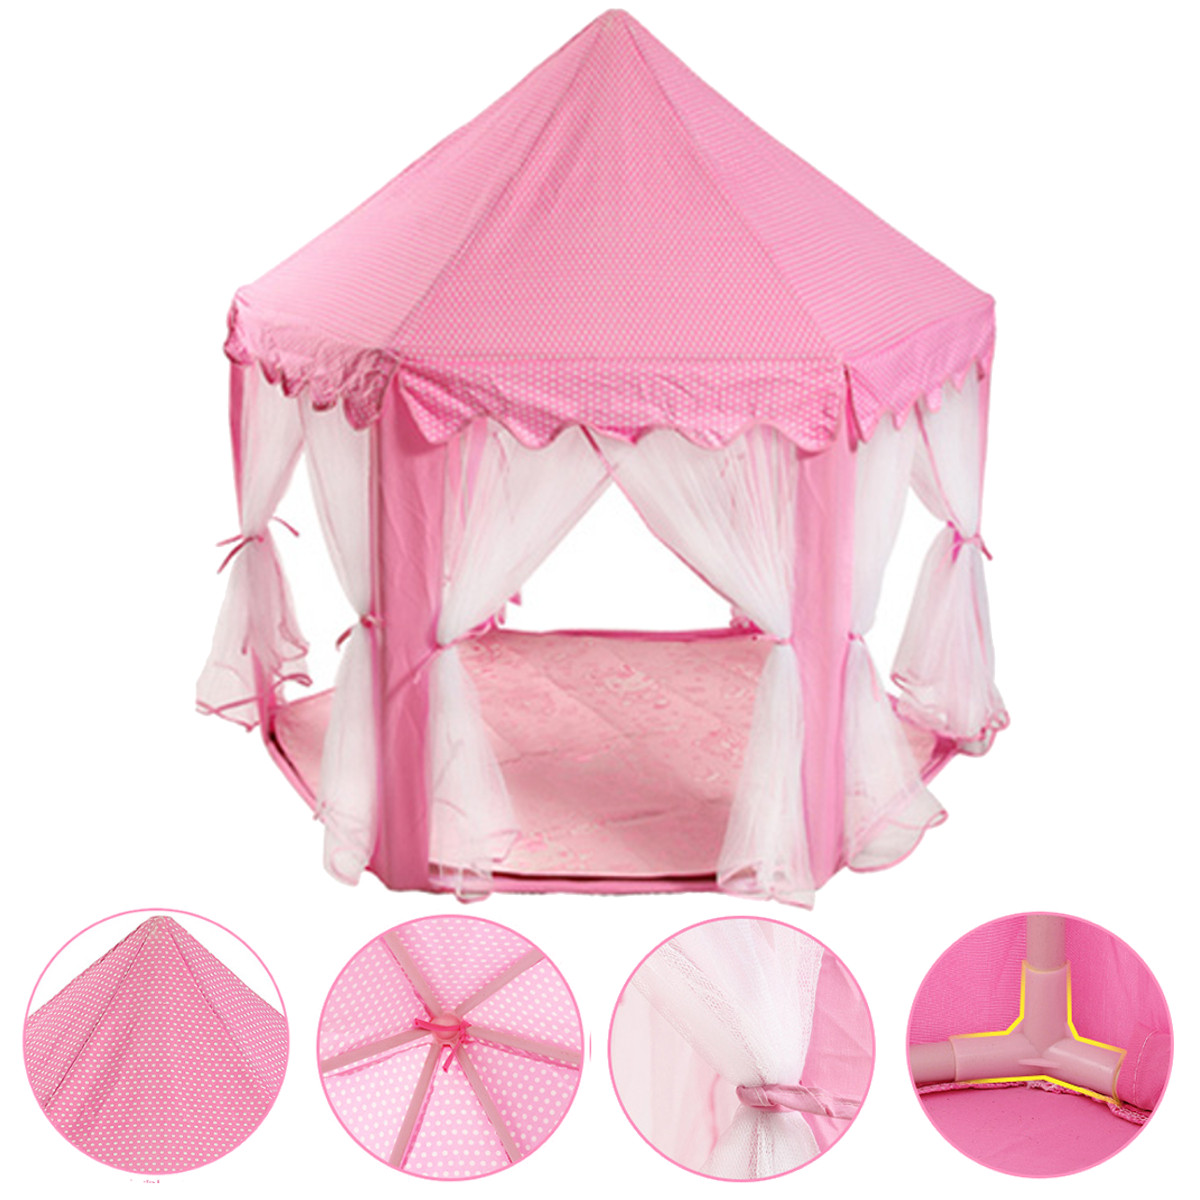 tente de jeu ch teau tipi camping princesse fille rose. Black Bedroom Furniture Sets. Home Design Ideas